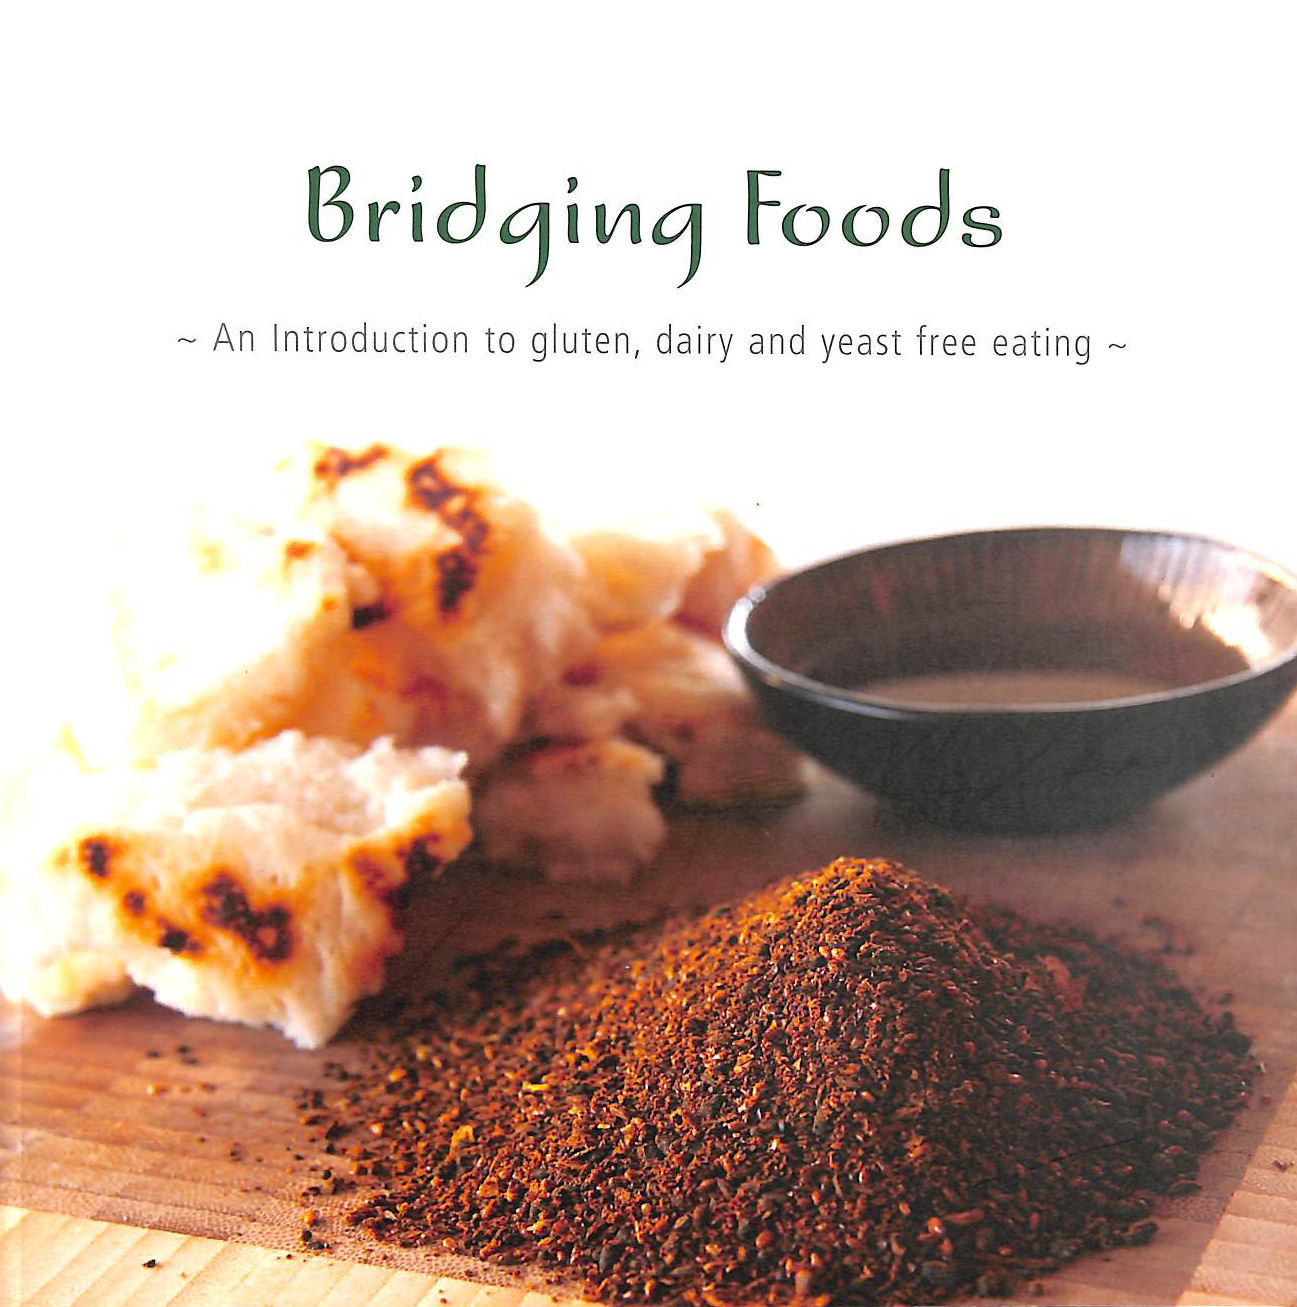 Image for Bridging Foods, An Introduction to Gluten, Dairy and Yeast Free Eating